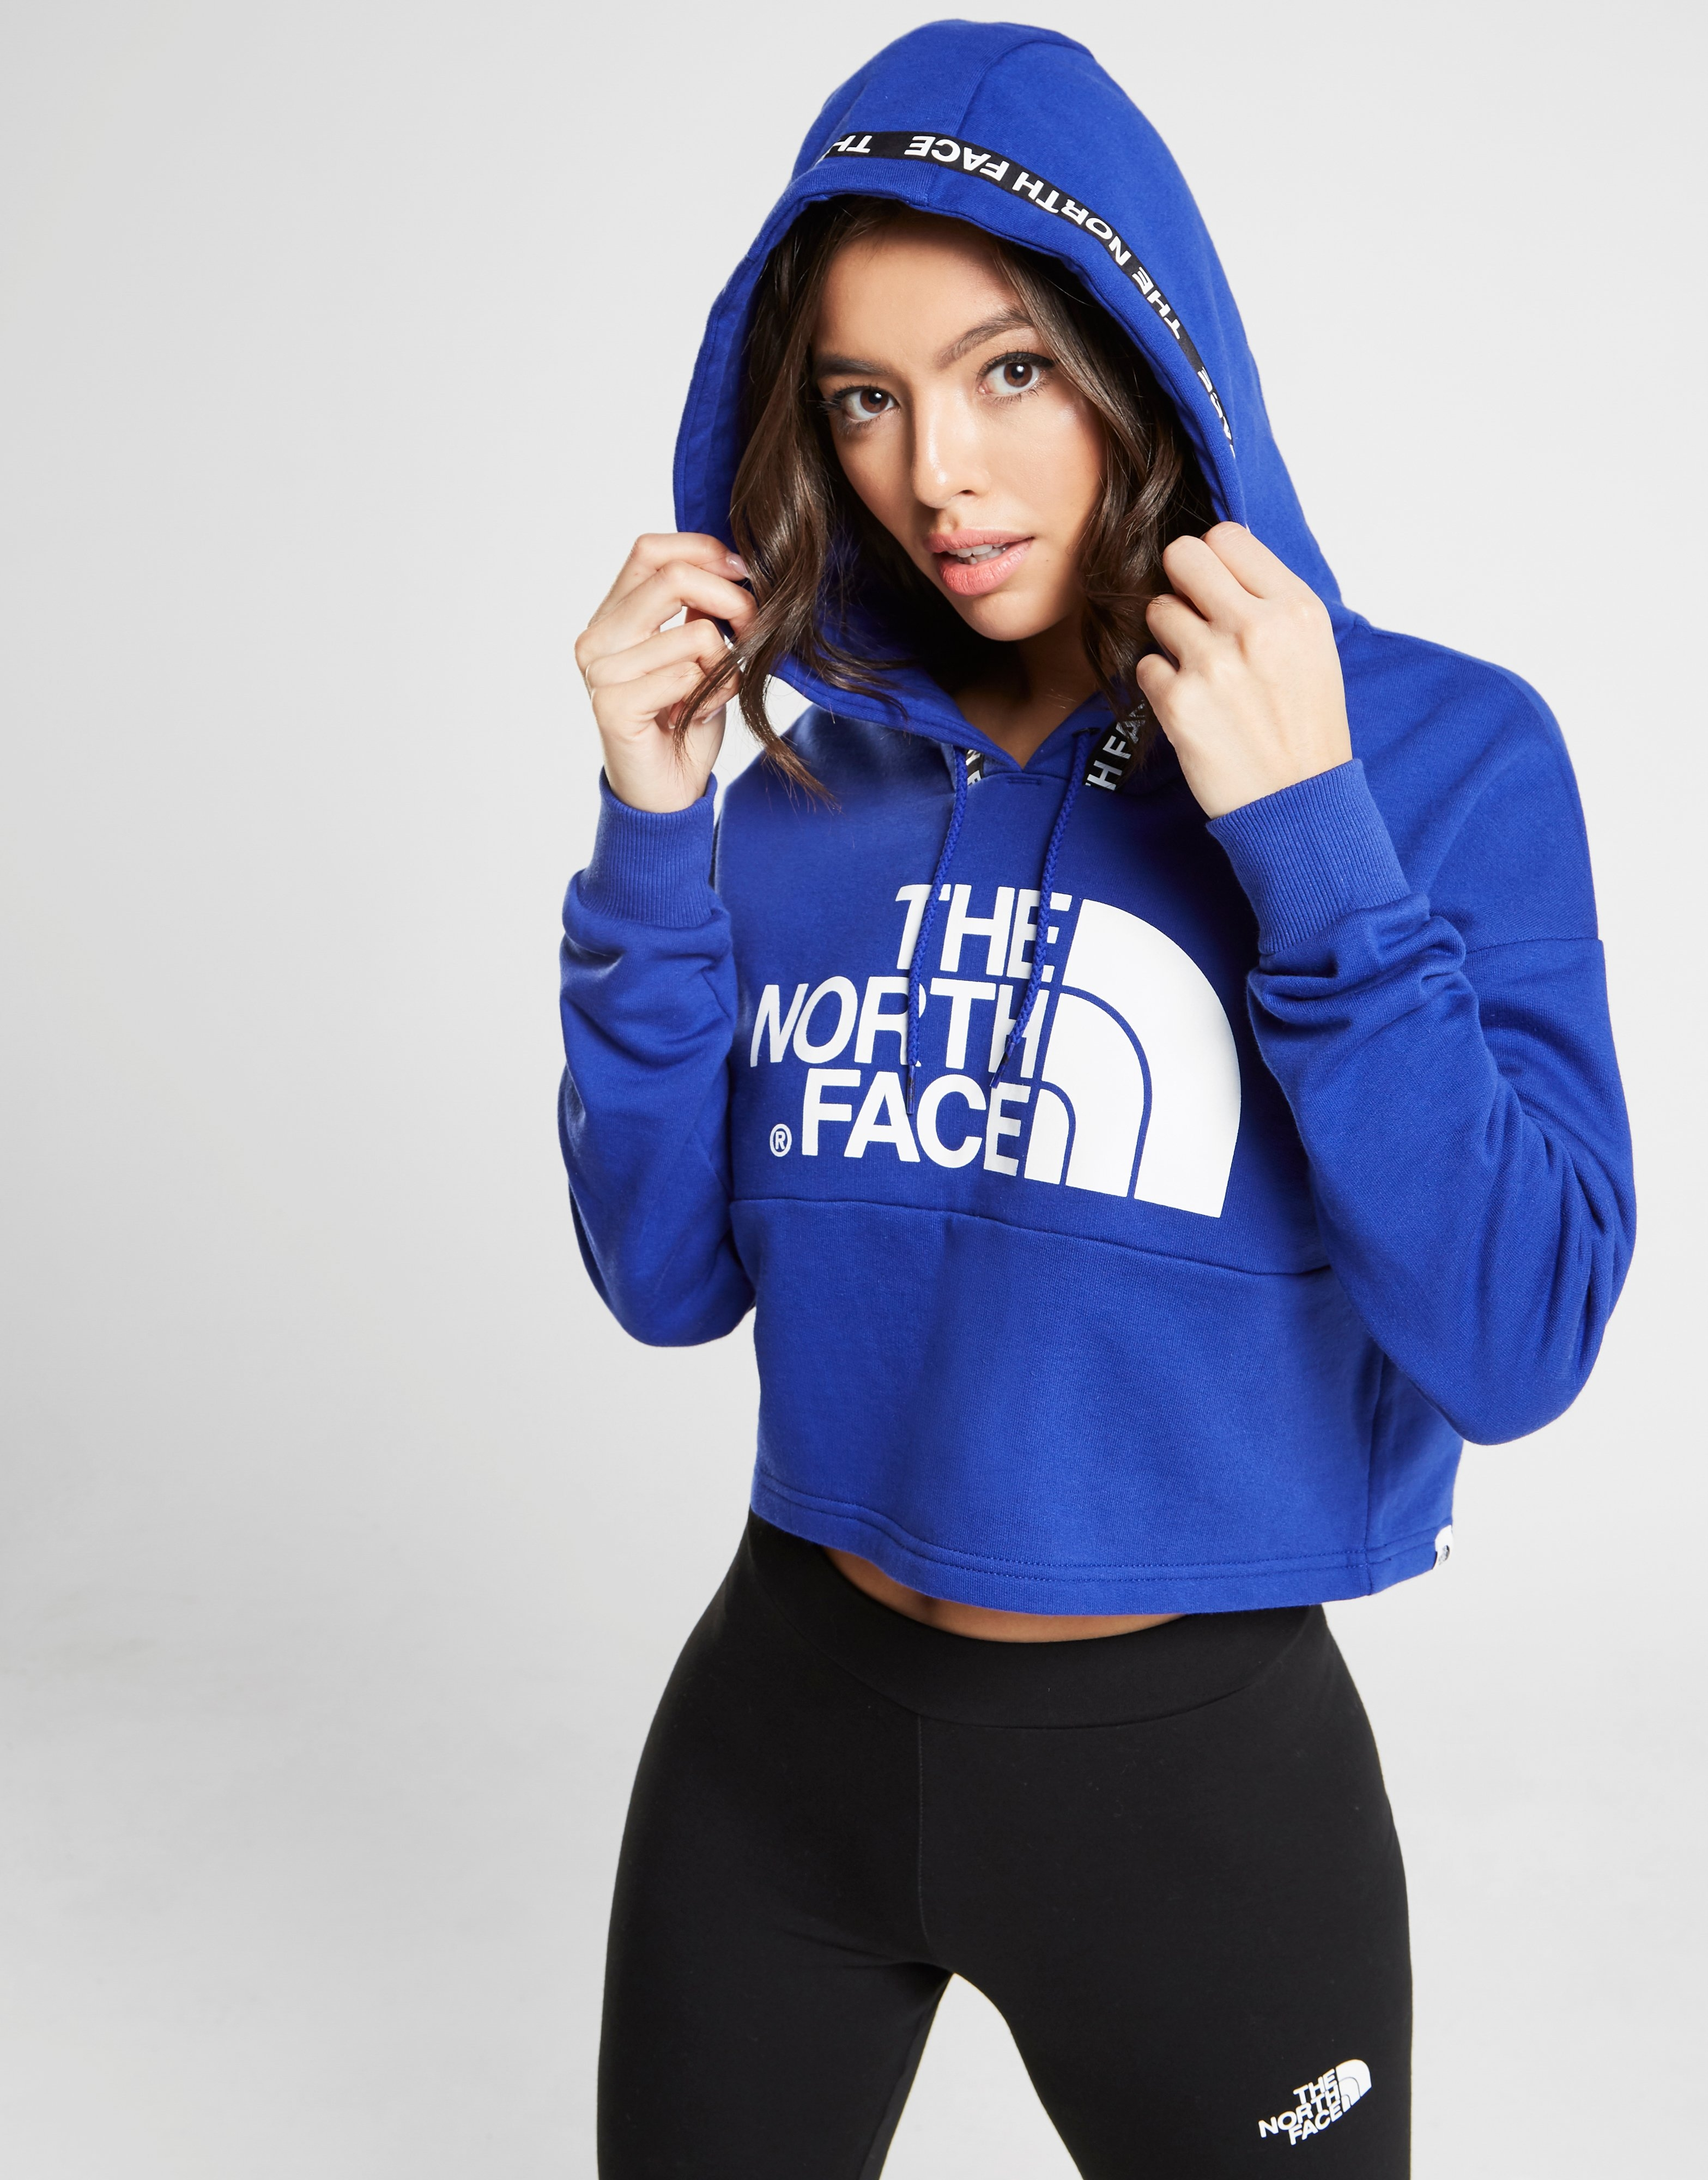 The North Face Tape Crop Hoodie